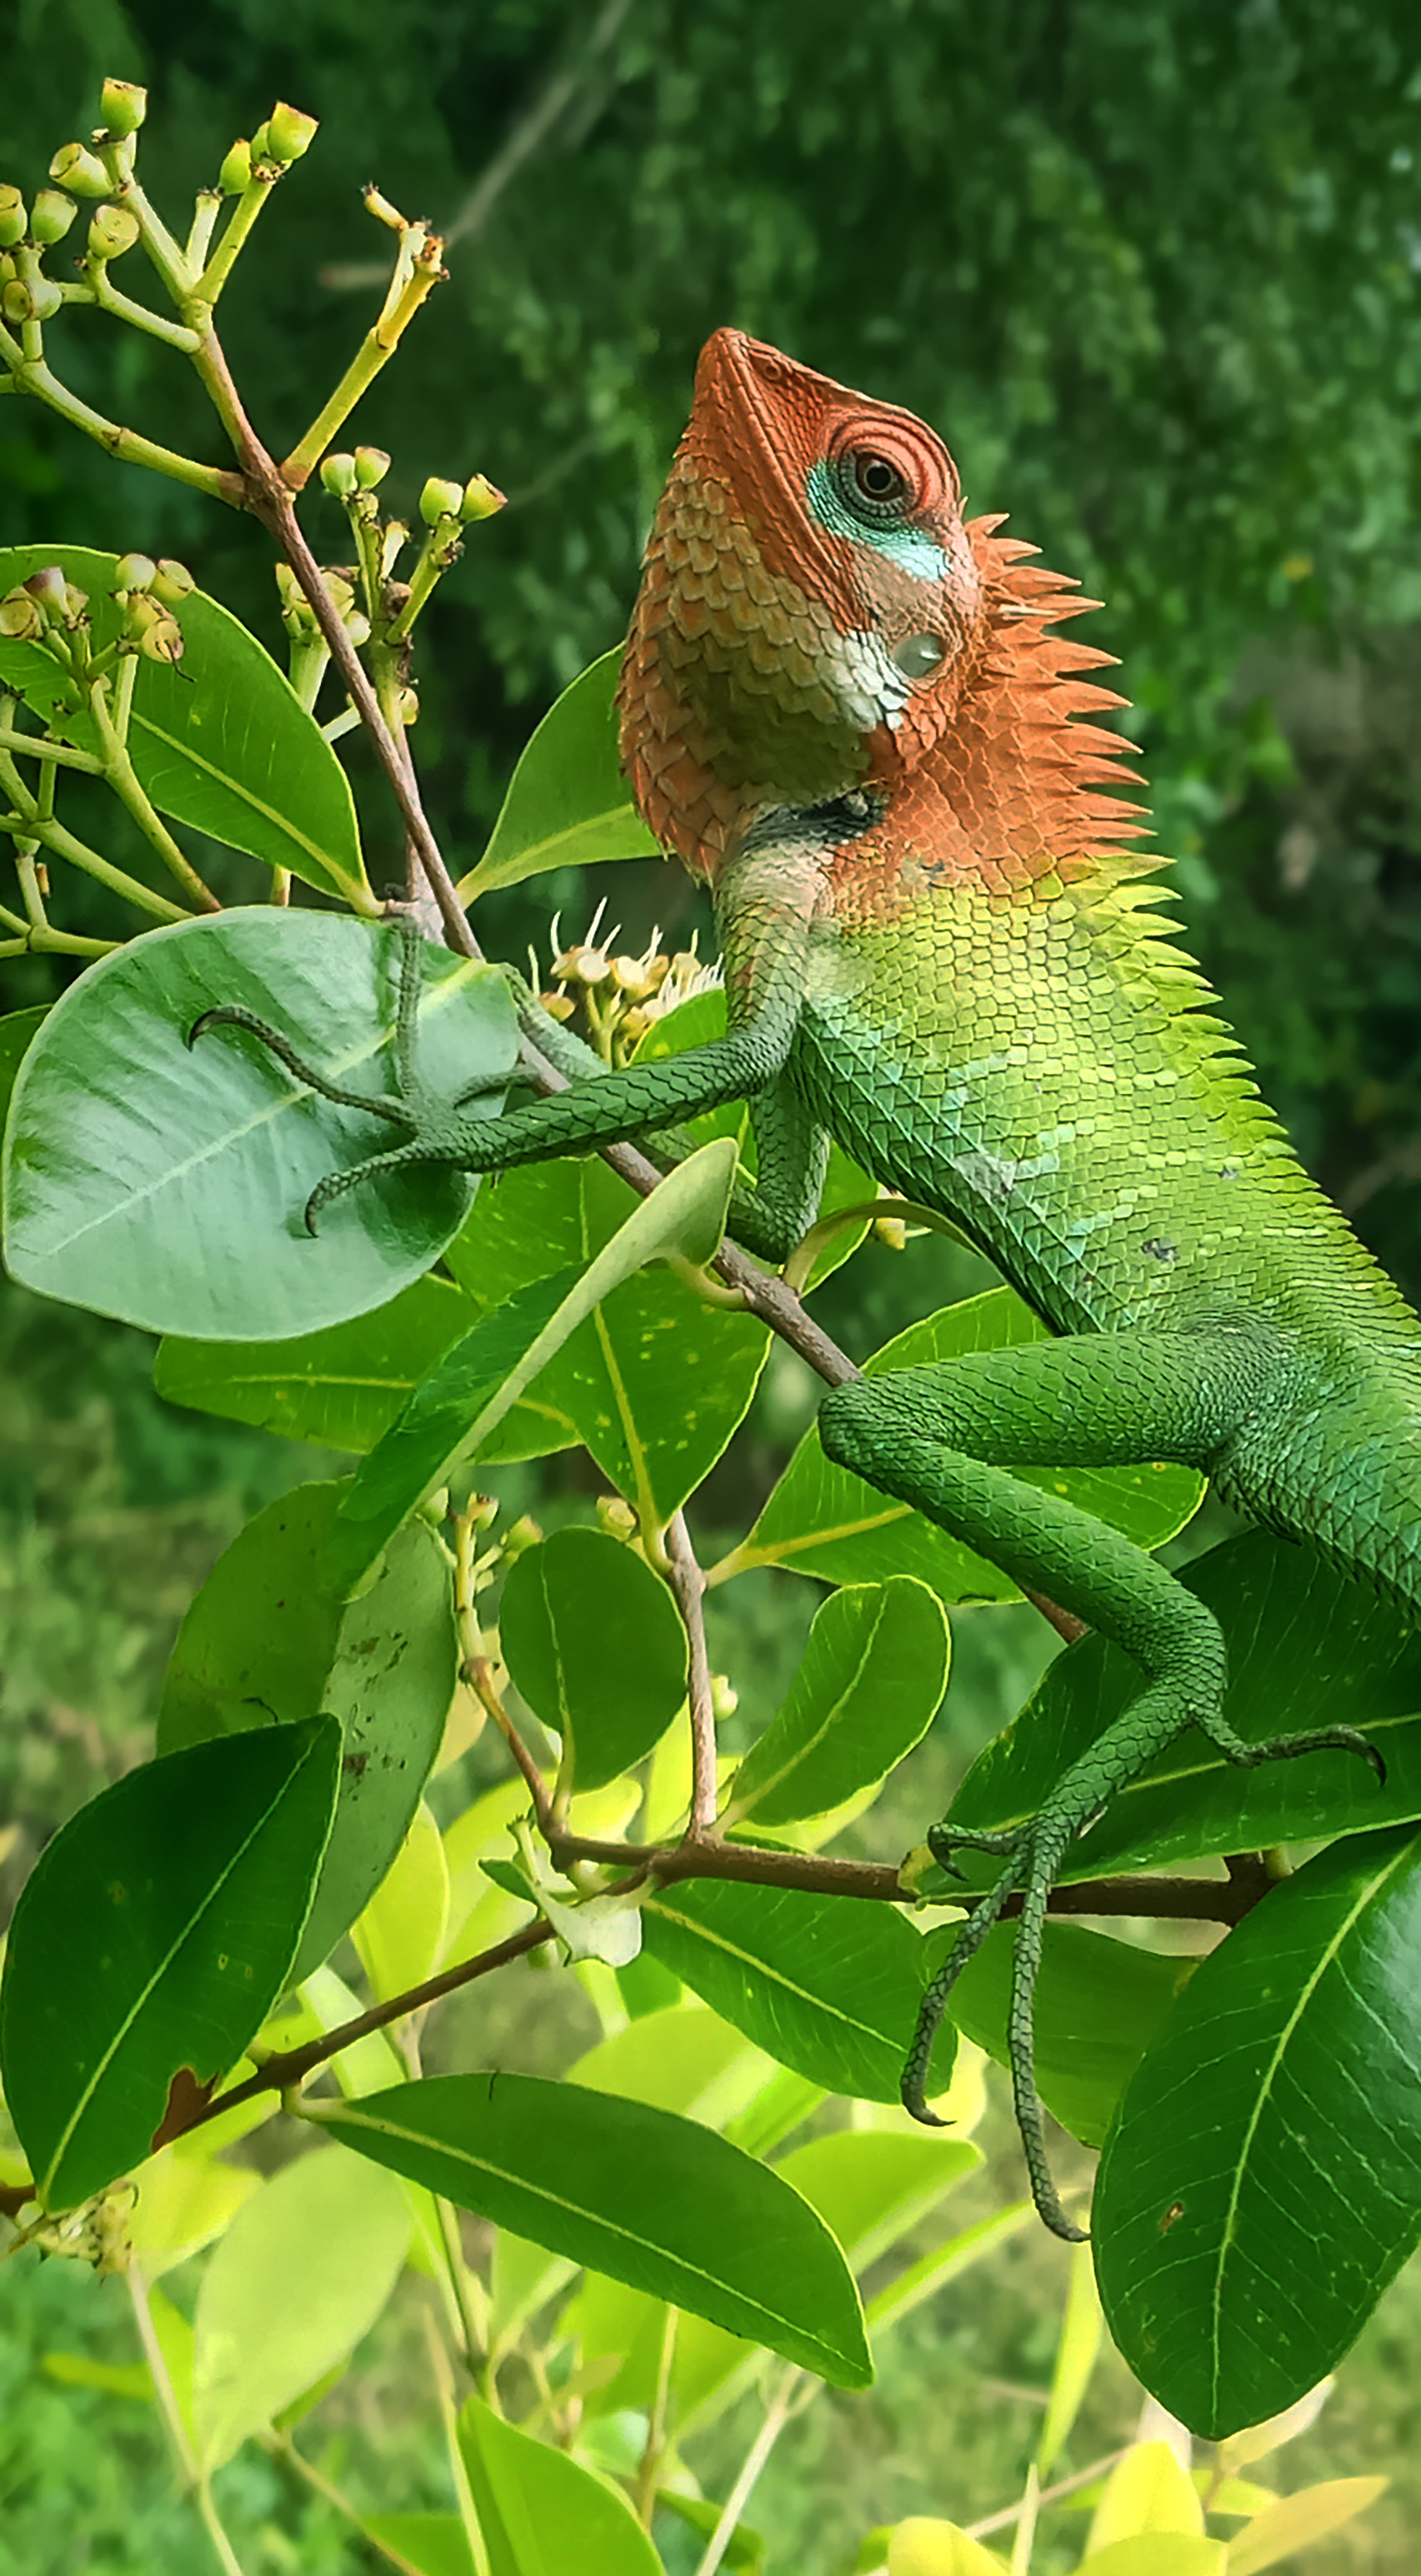 File:Chameleon changes the color.jpg - Wikimedia Commons